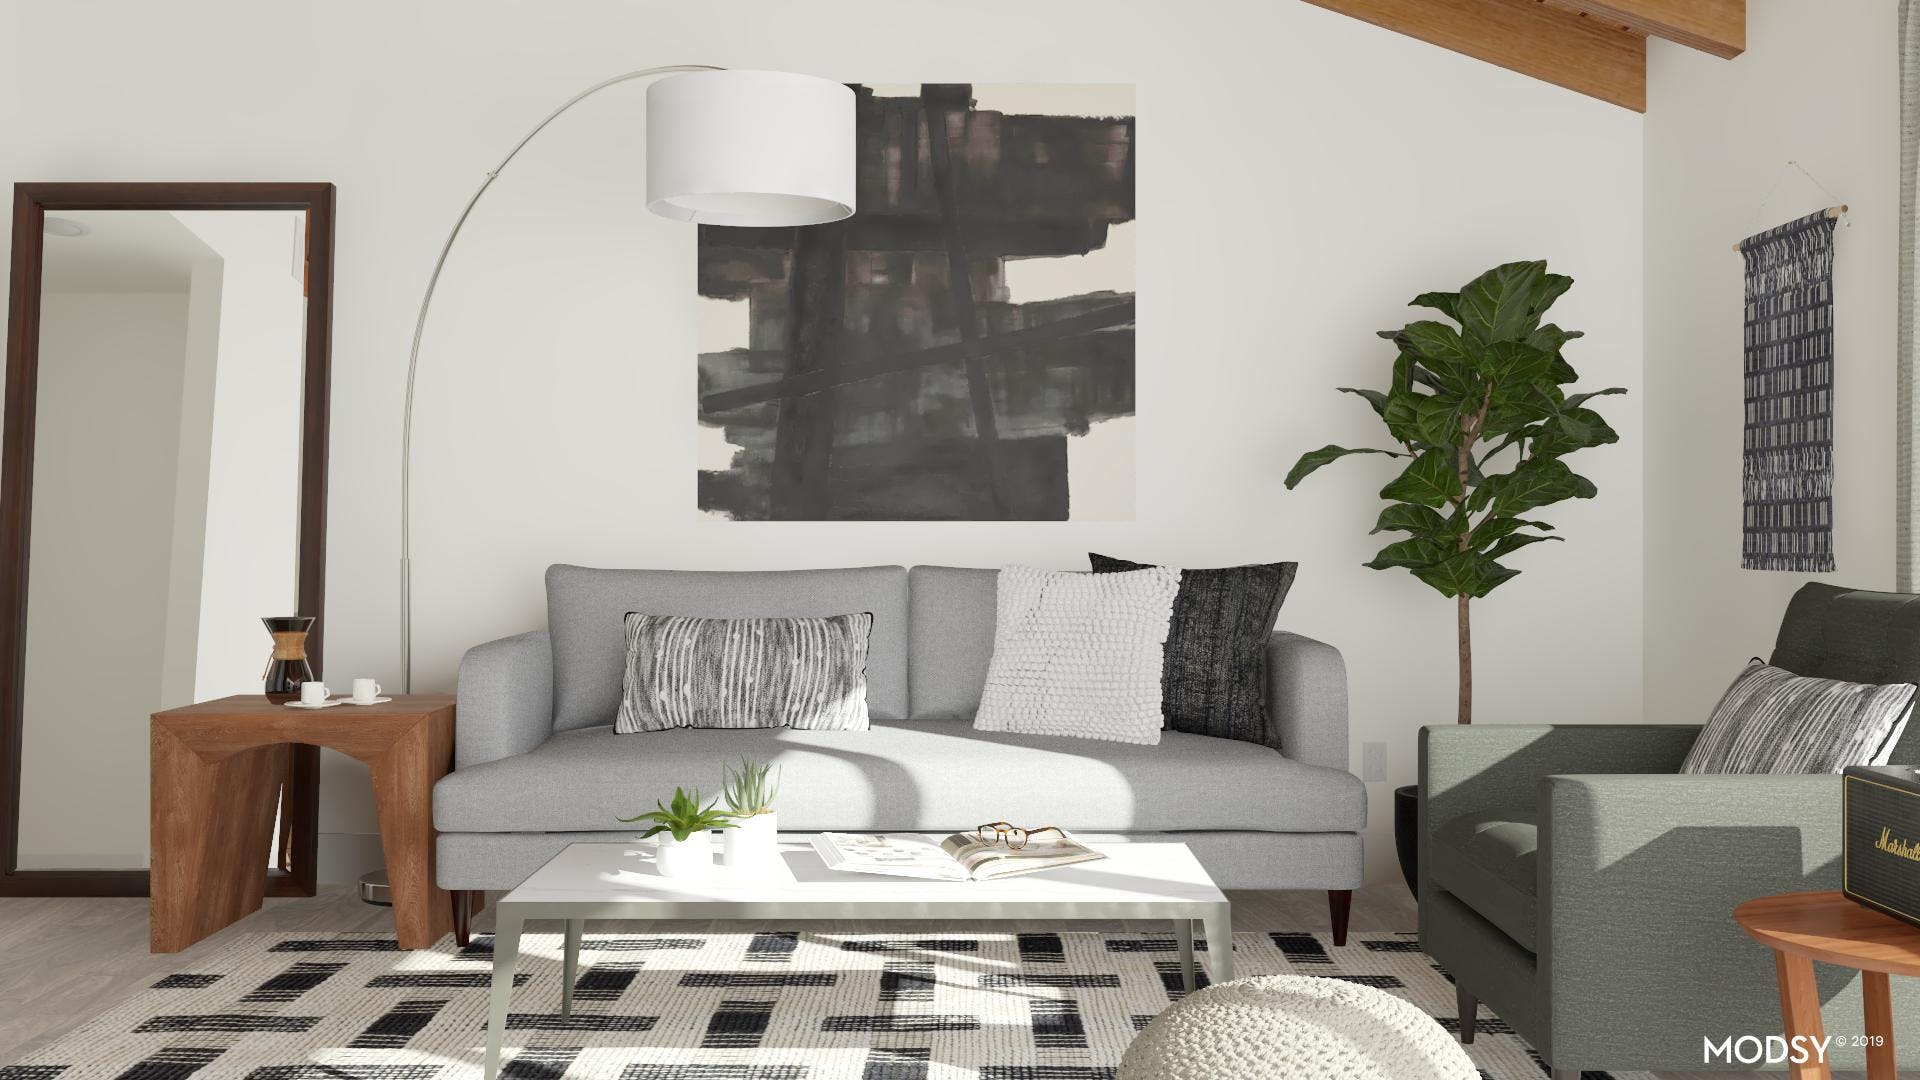 Modern Living Room with Black and White Appeal